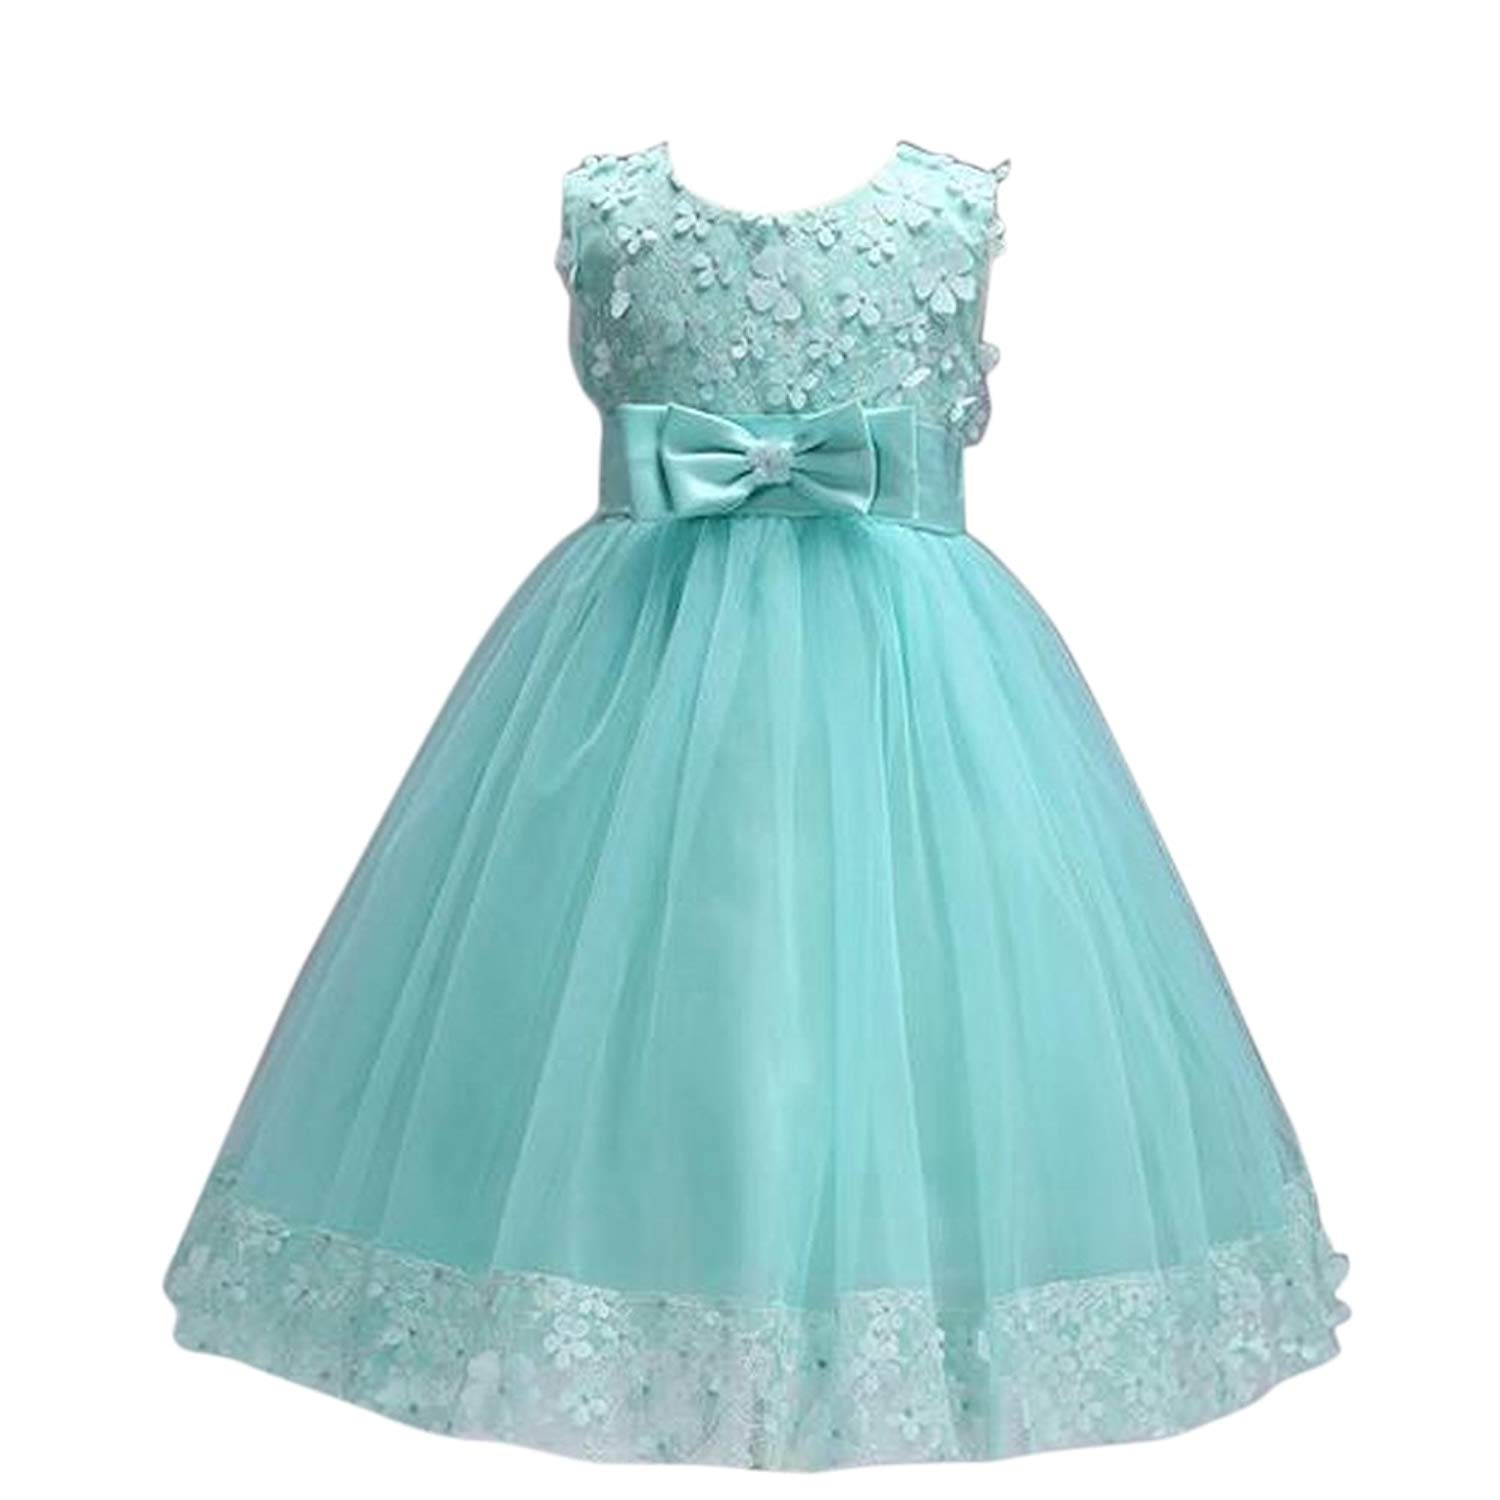 5bdcbbecc9758 Get Quotations · JIANLANPTT Pretty Child Little Girl Wedding Dress Formal Party  Dresses Kids Wear